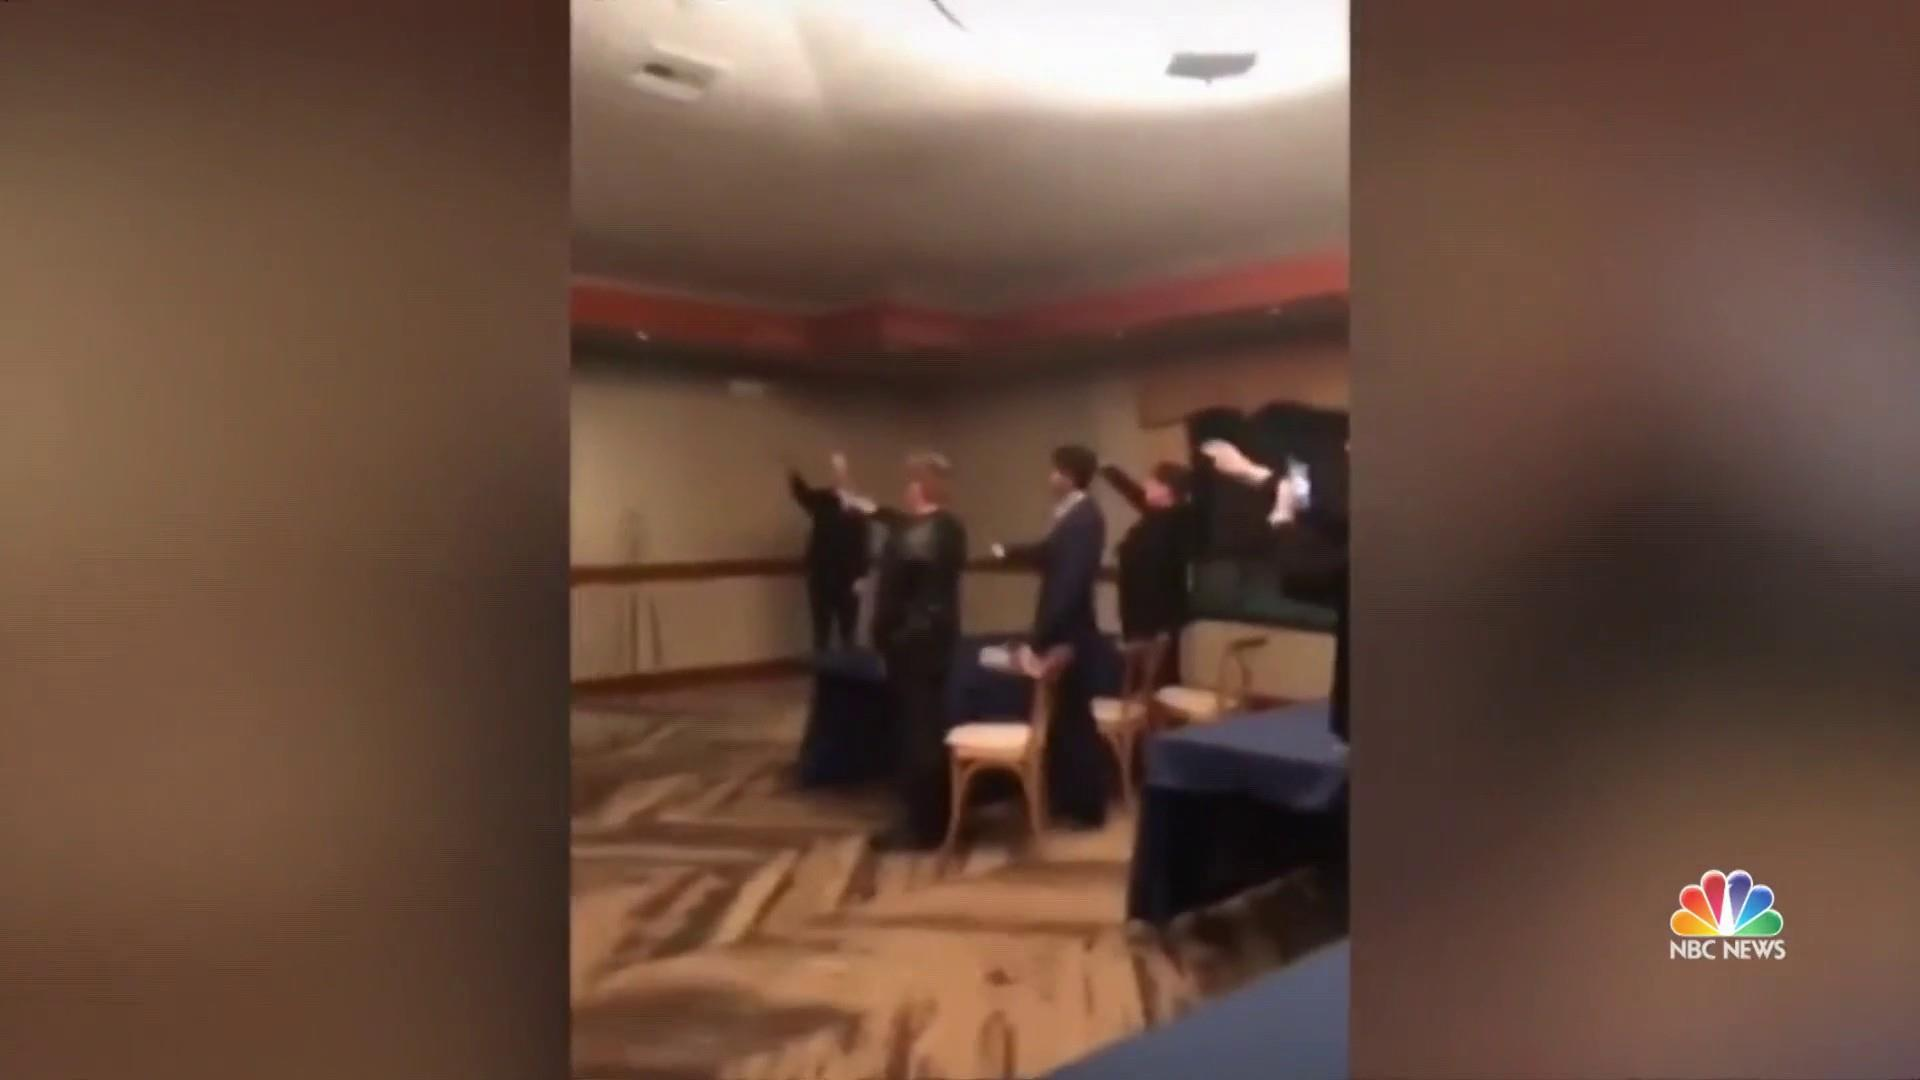 California high school students seen in video giving Nazi salute, singing Nazi song